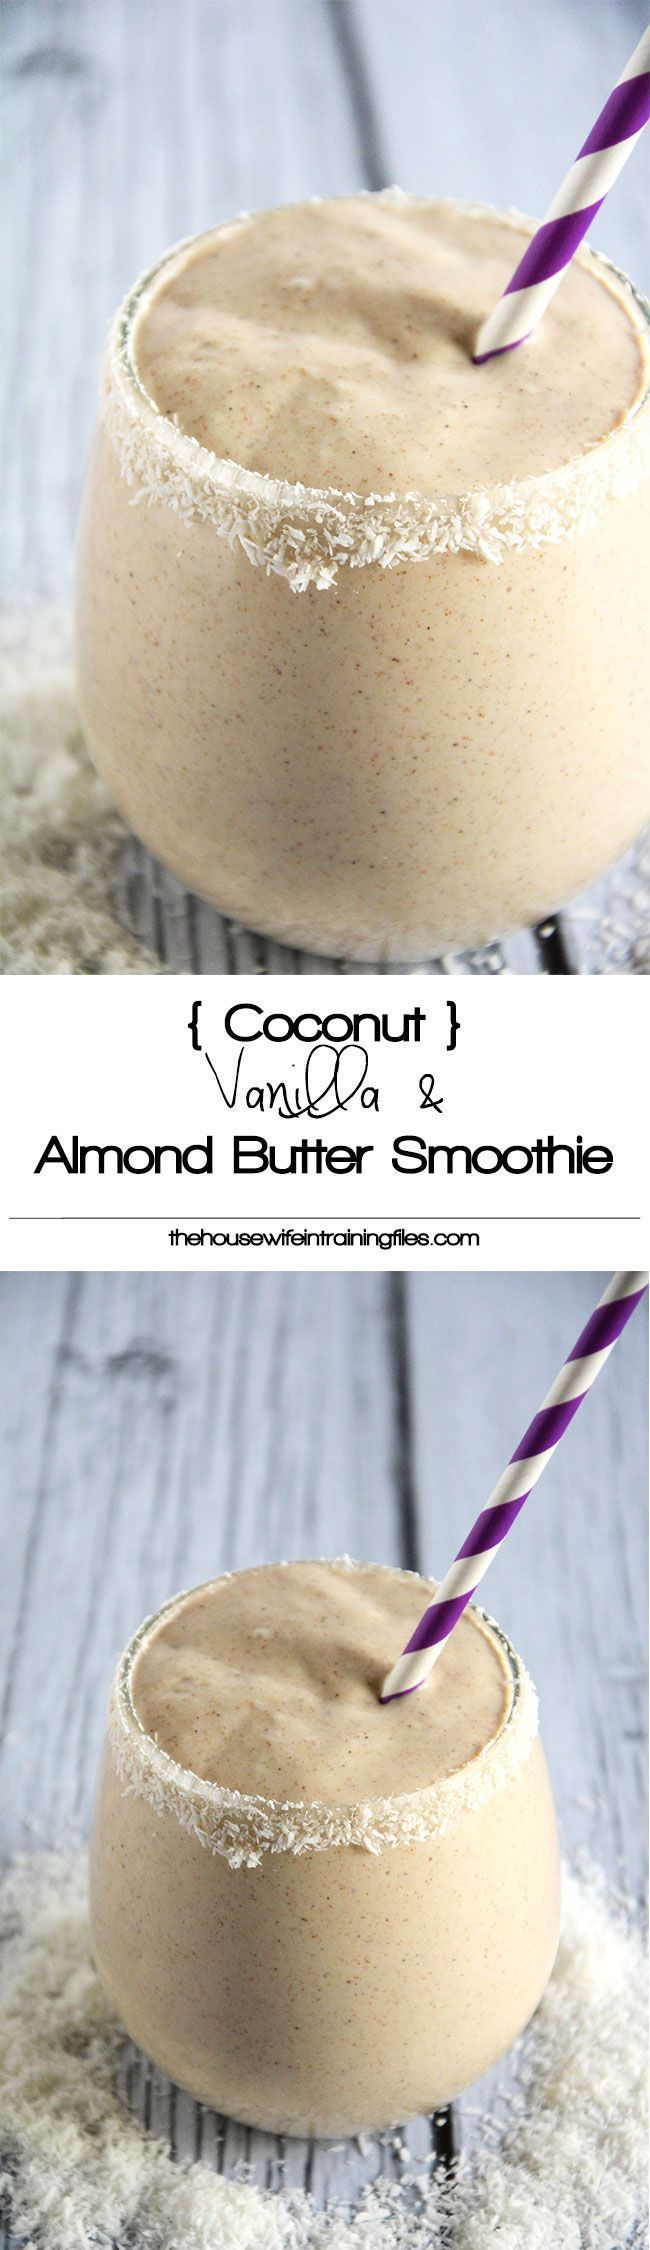 A velvety smoothie made with coconut milk, vanilla, almond butter and sweetened with dates!